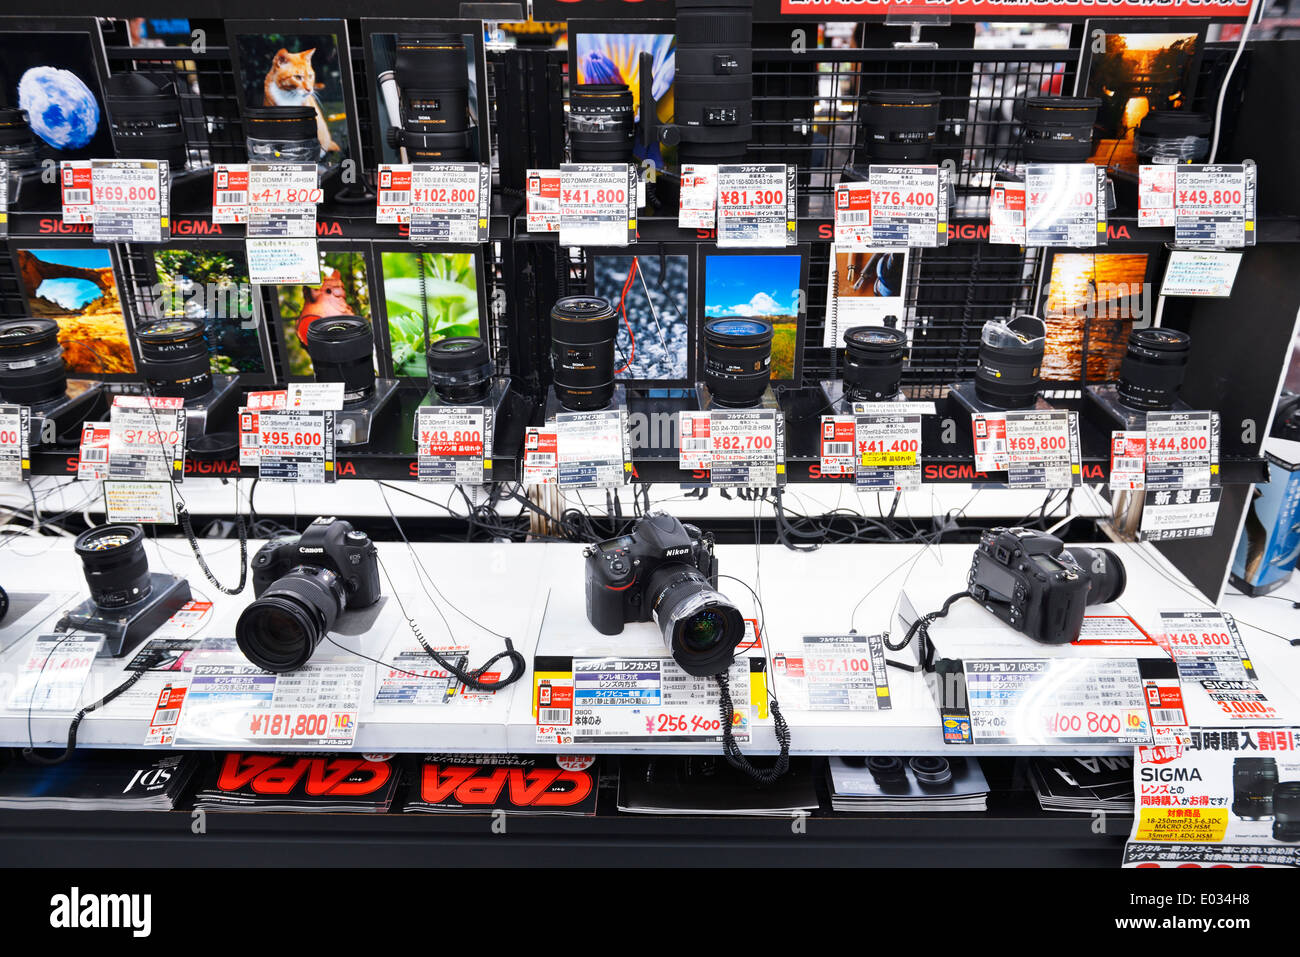 Cameras and lenses on display in electronics store Yodobashi Camera, Yodobashi-Akiba in Akihabara, Tokyo, Japan. - Stock Image